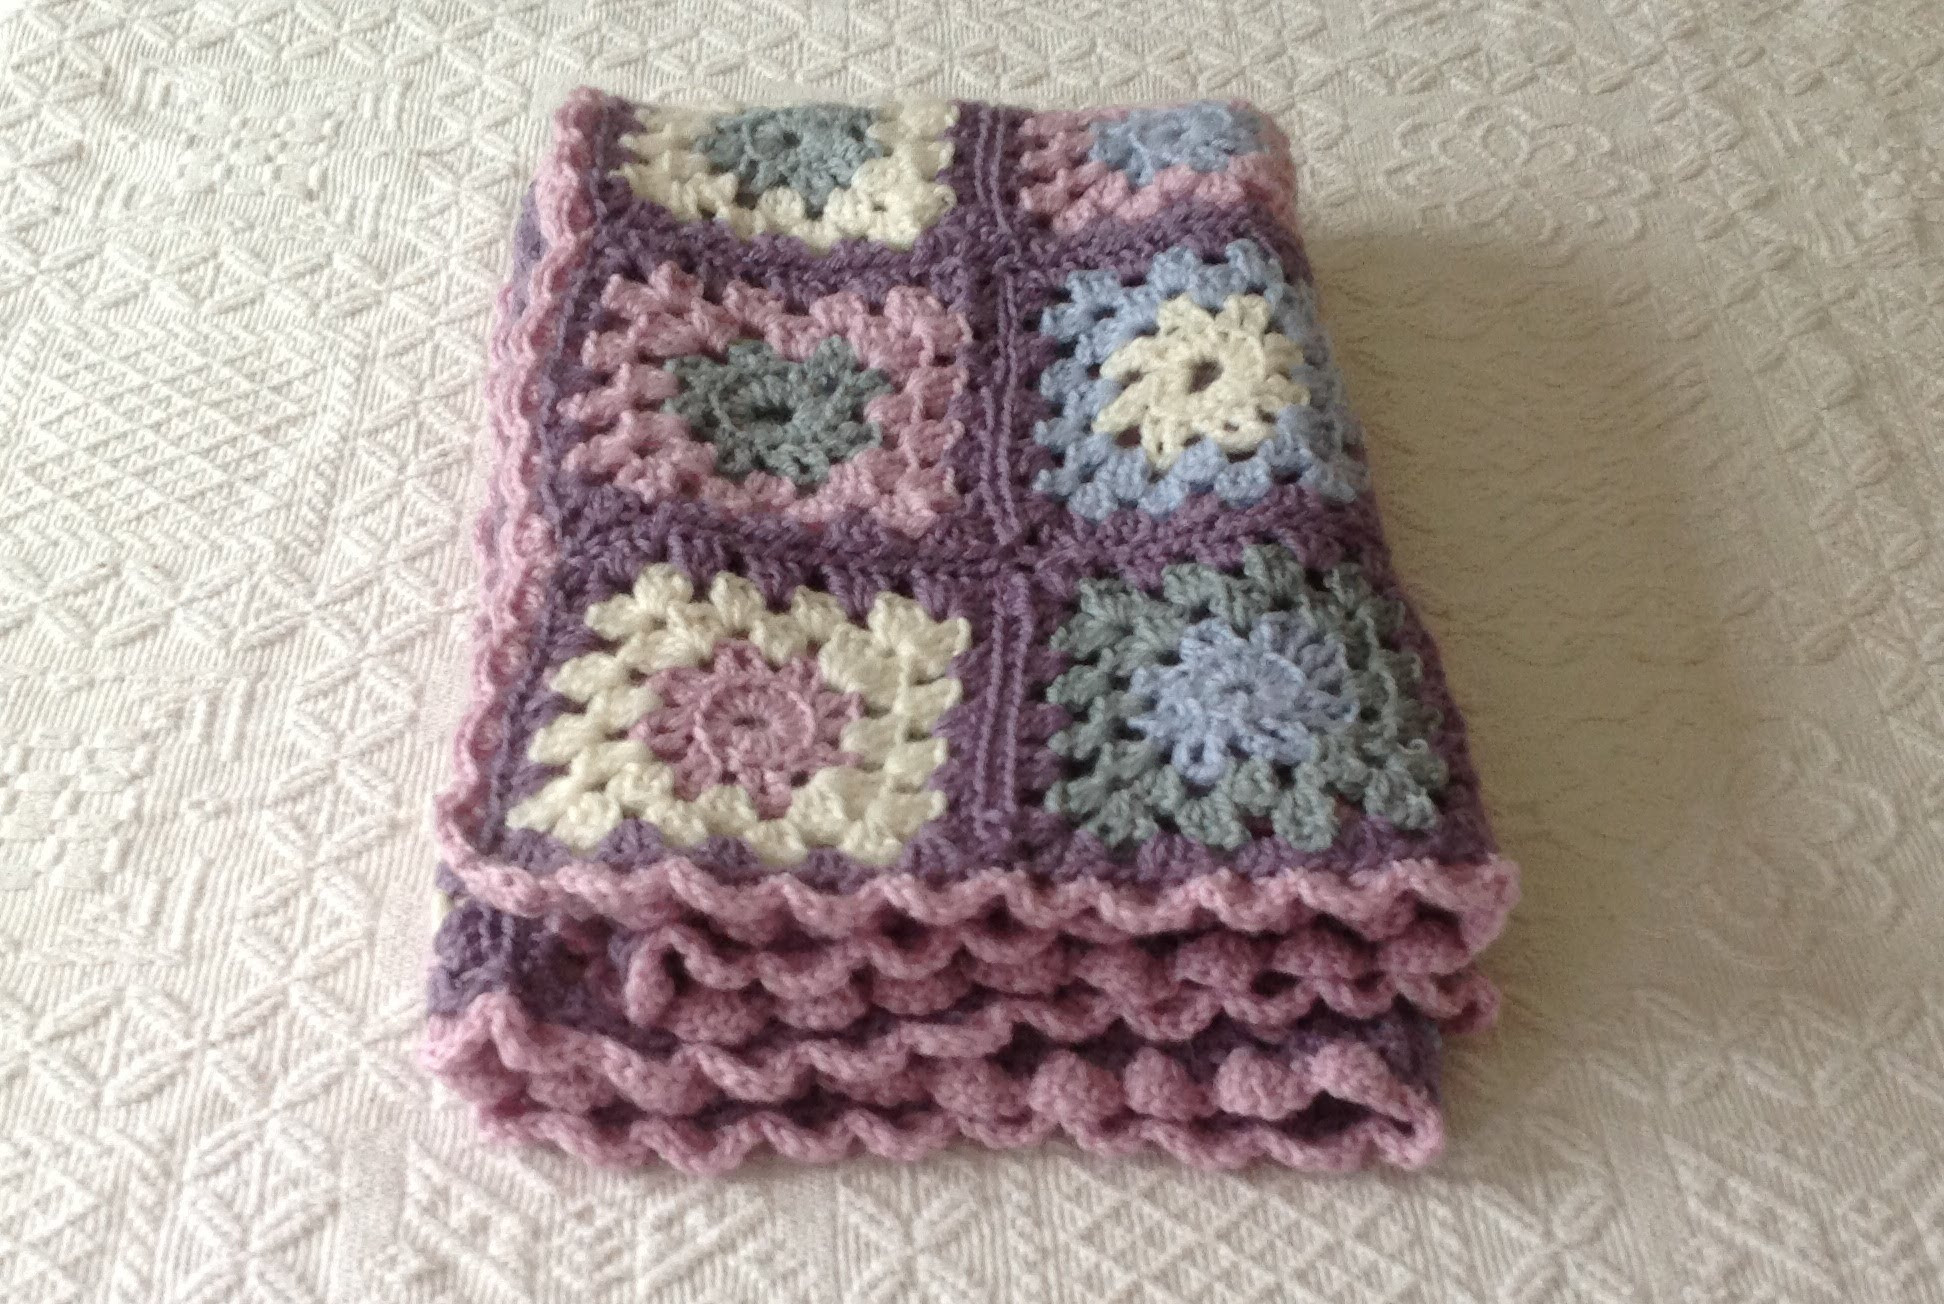 Crochet Granny Square Blanket Patterns Free Fresh [video Tutorial] This Very Easy Granny Square Blanket is Of Amazing 42 Ideas Crochet Granny Square Blanket Patterns Free